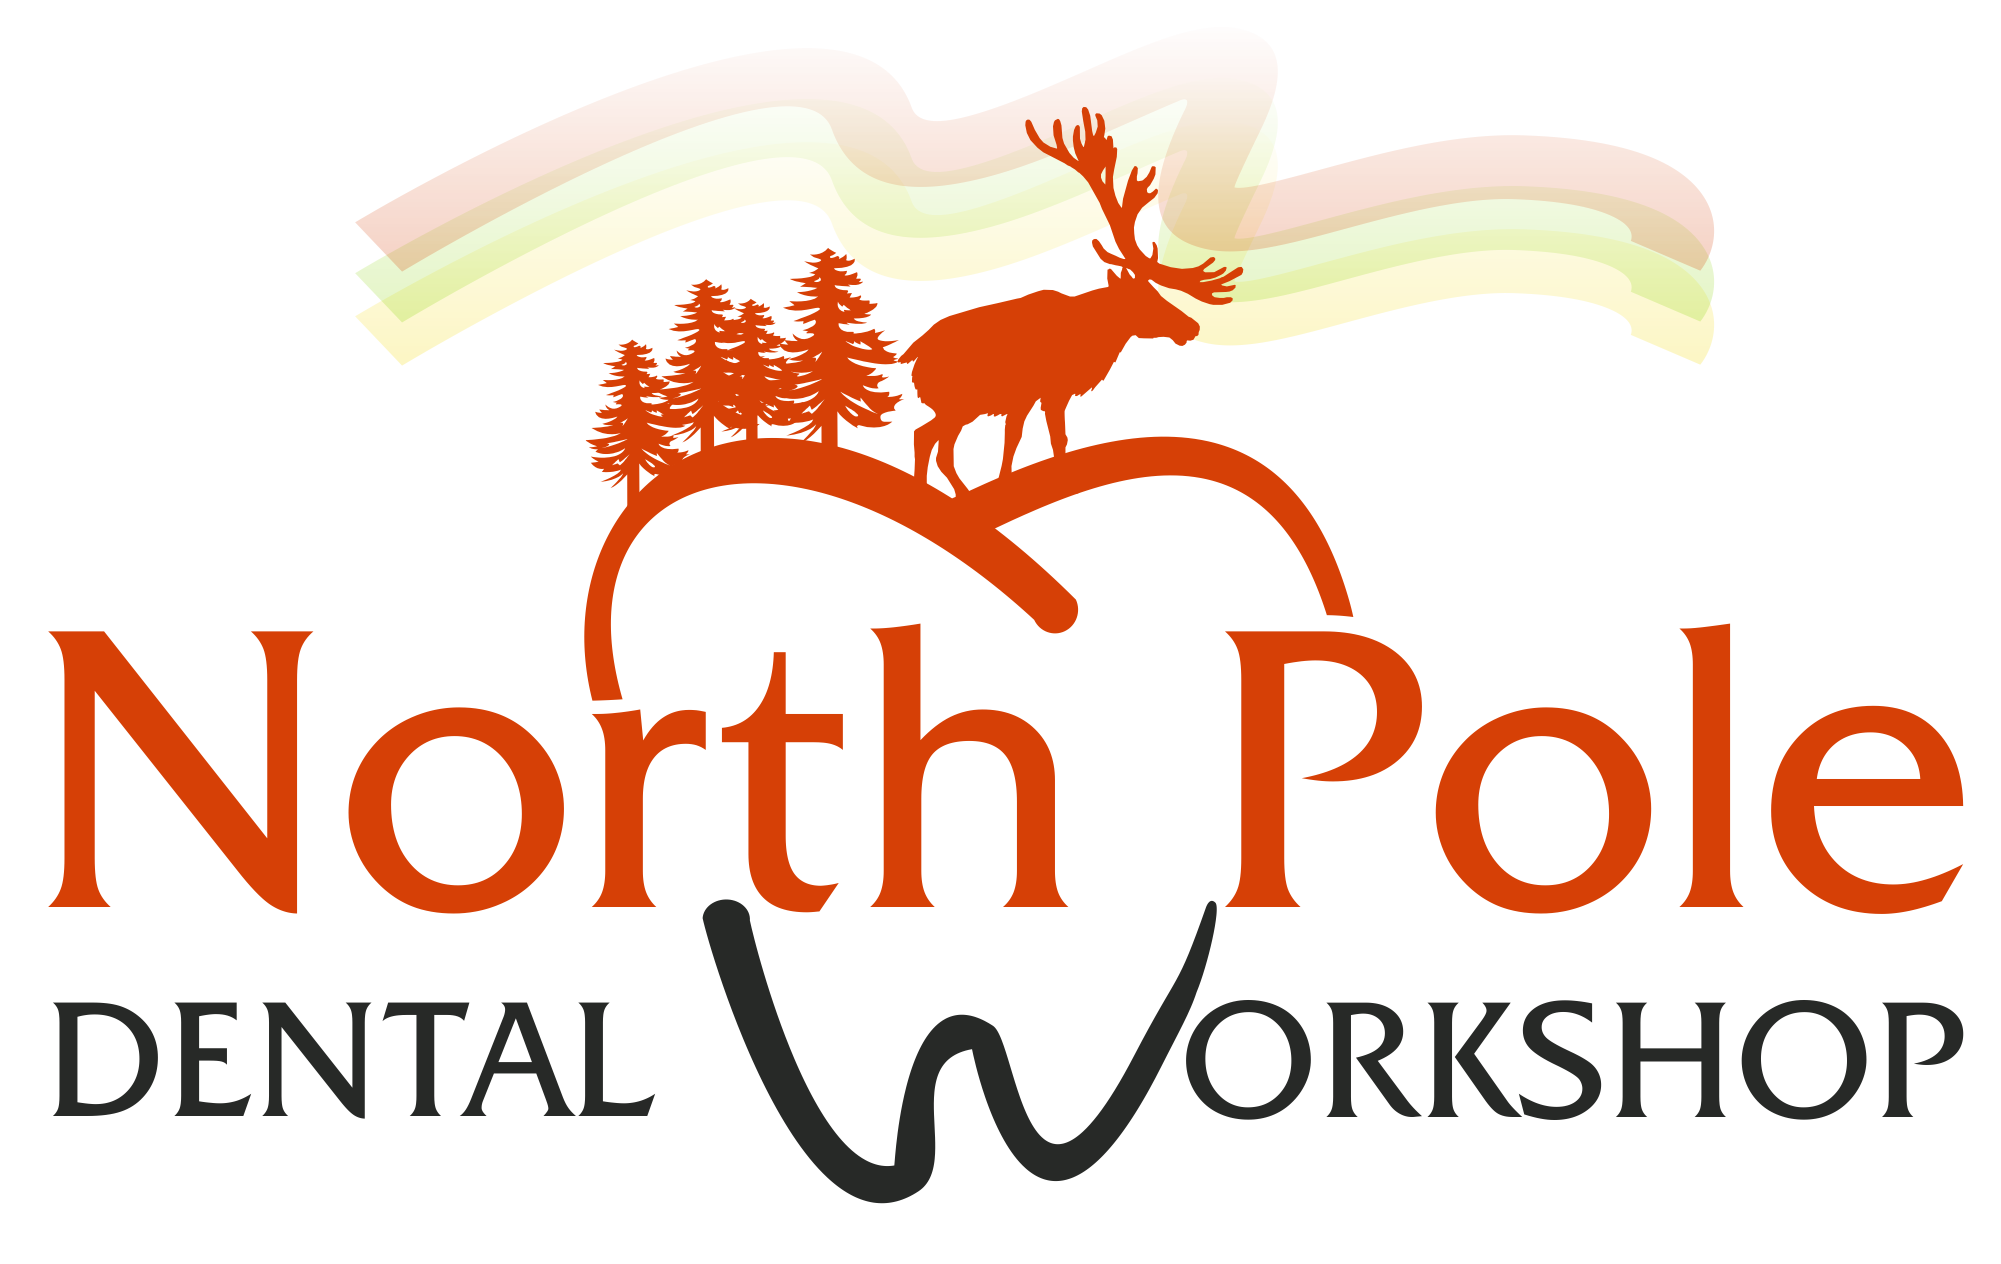 North Pole Dental Workshop